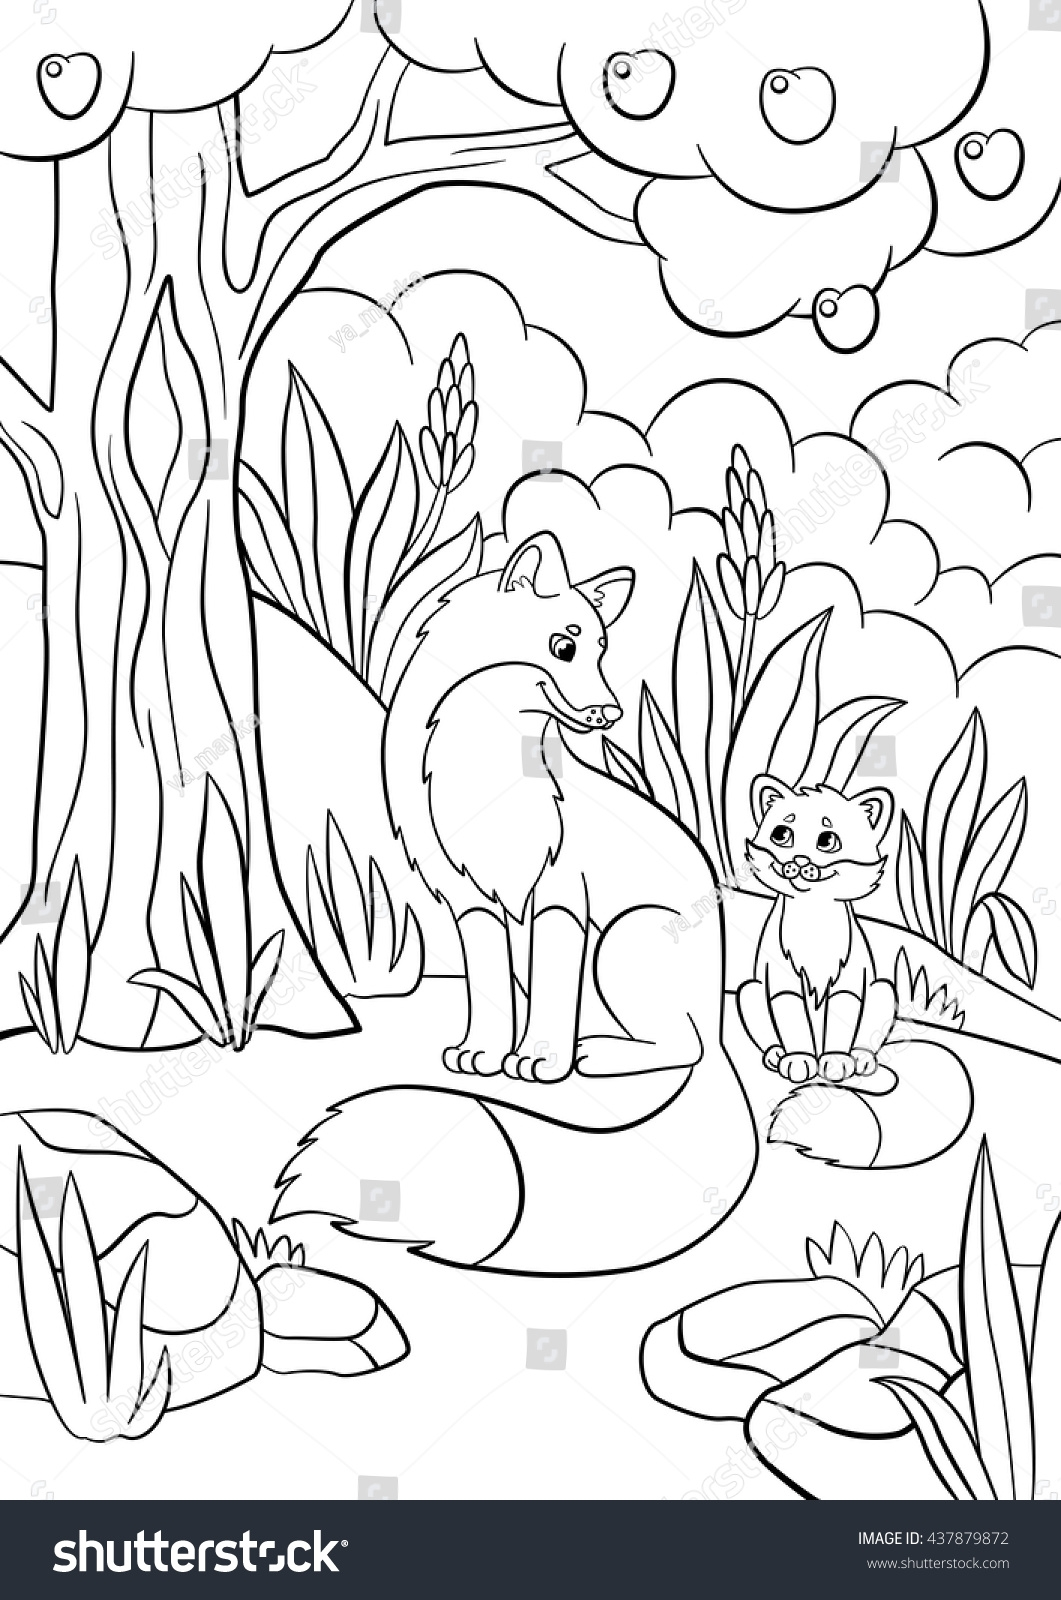 1061x1600 Fresh Nice And Cute Fox Coloring Pages For Kids Nice Org Free